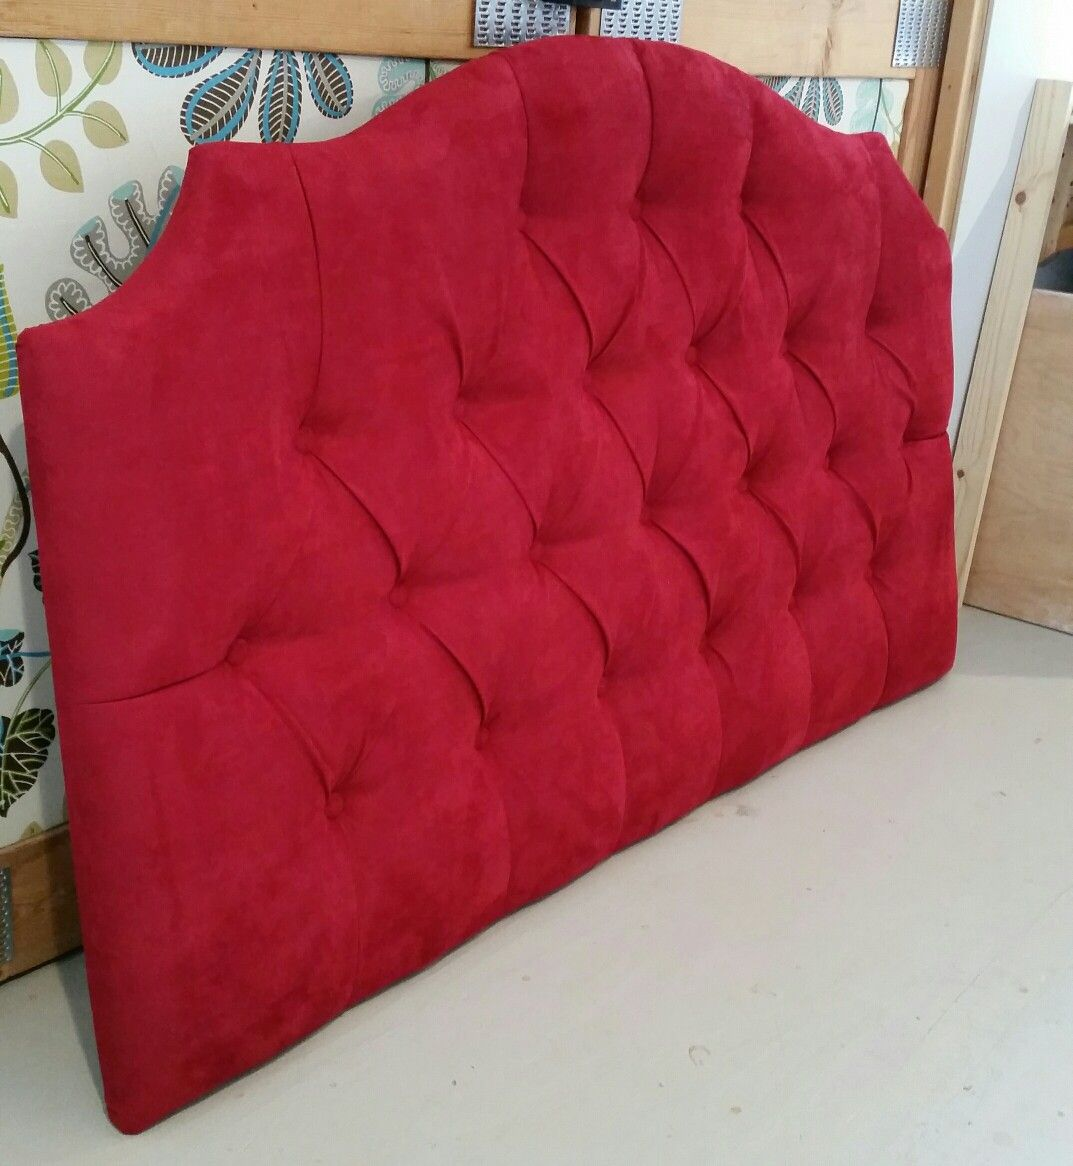 Red Suede Tufted Upholstered Headboard Custom Wall Mounted